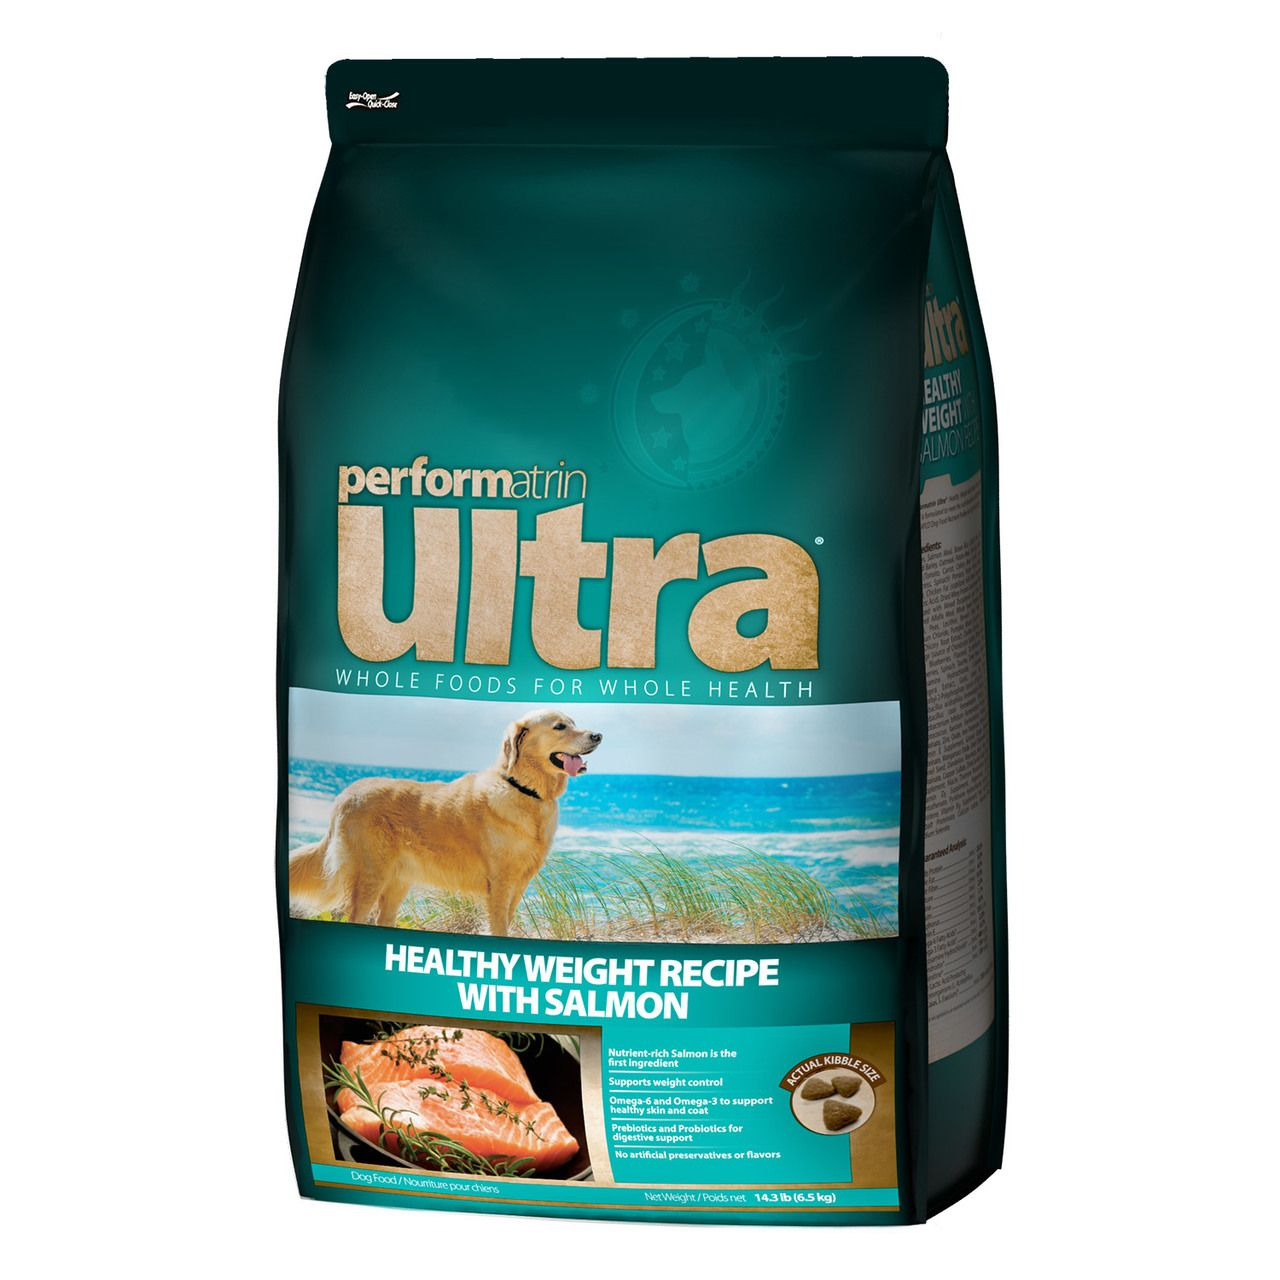 Performatrin ultra healthy weight with salmon recipe dog